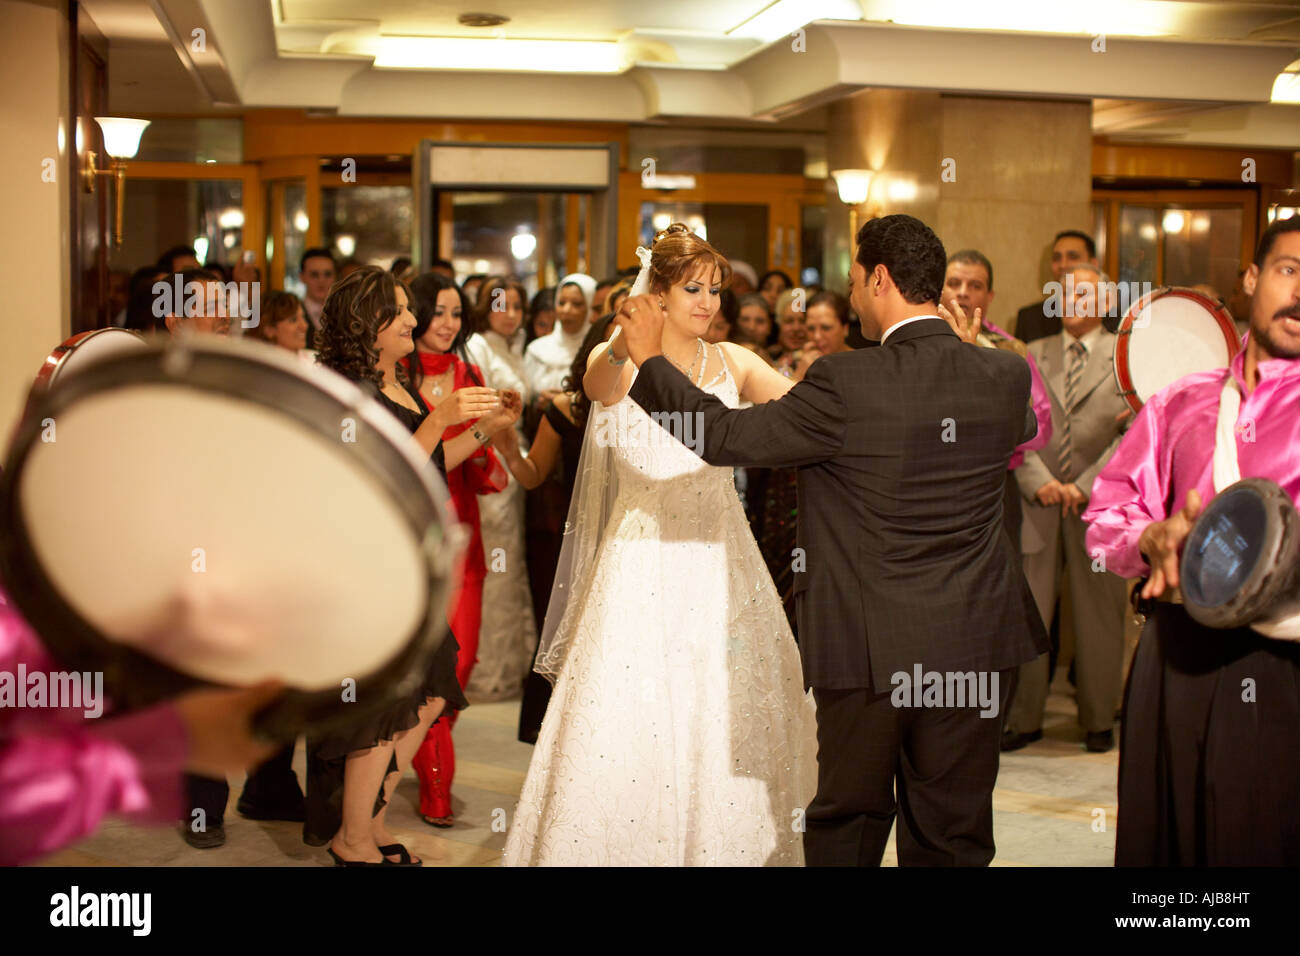 and church groom outside detail royalty bands with image free picture stock a bride photo band mariachi stand